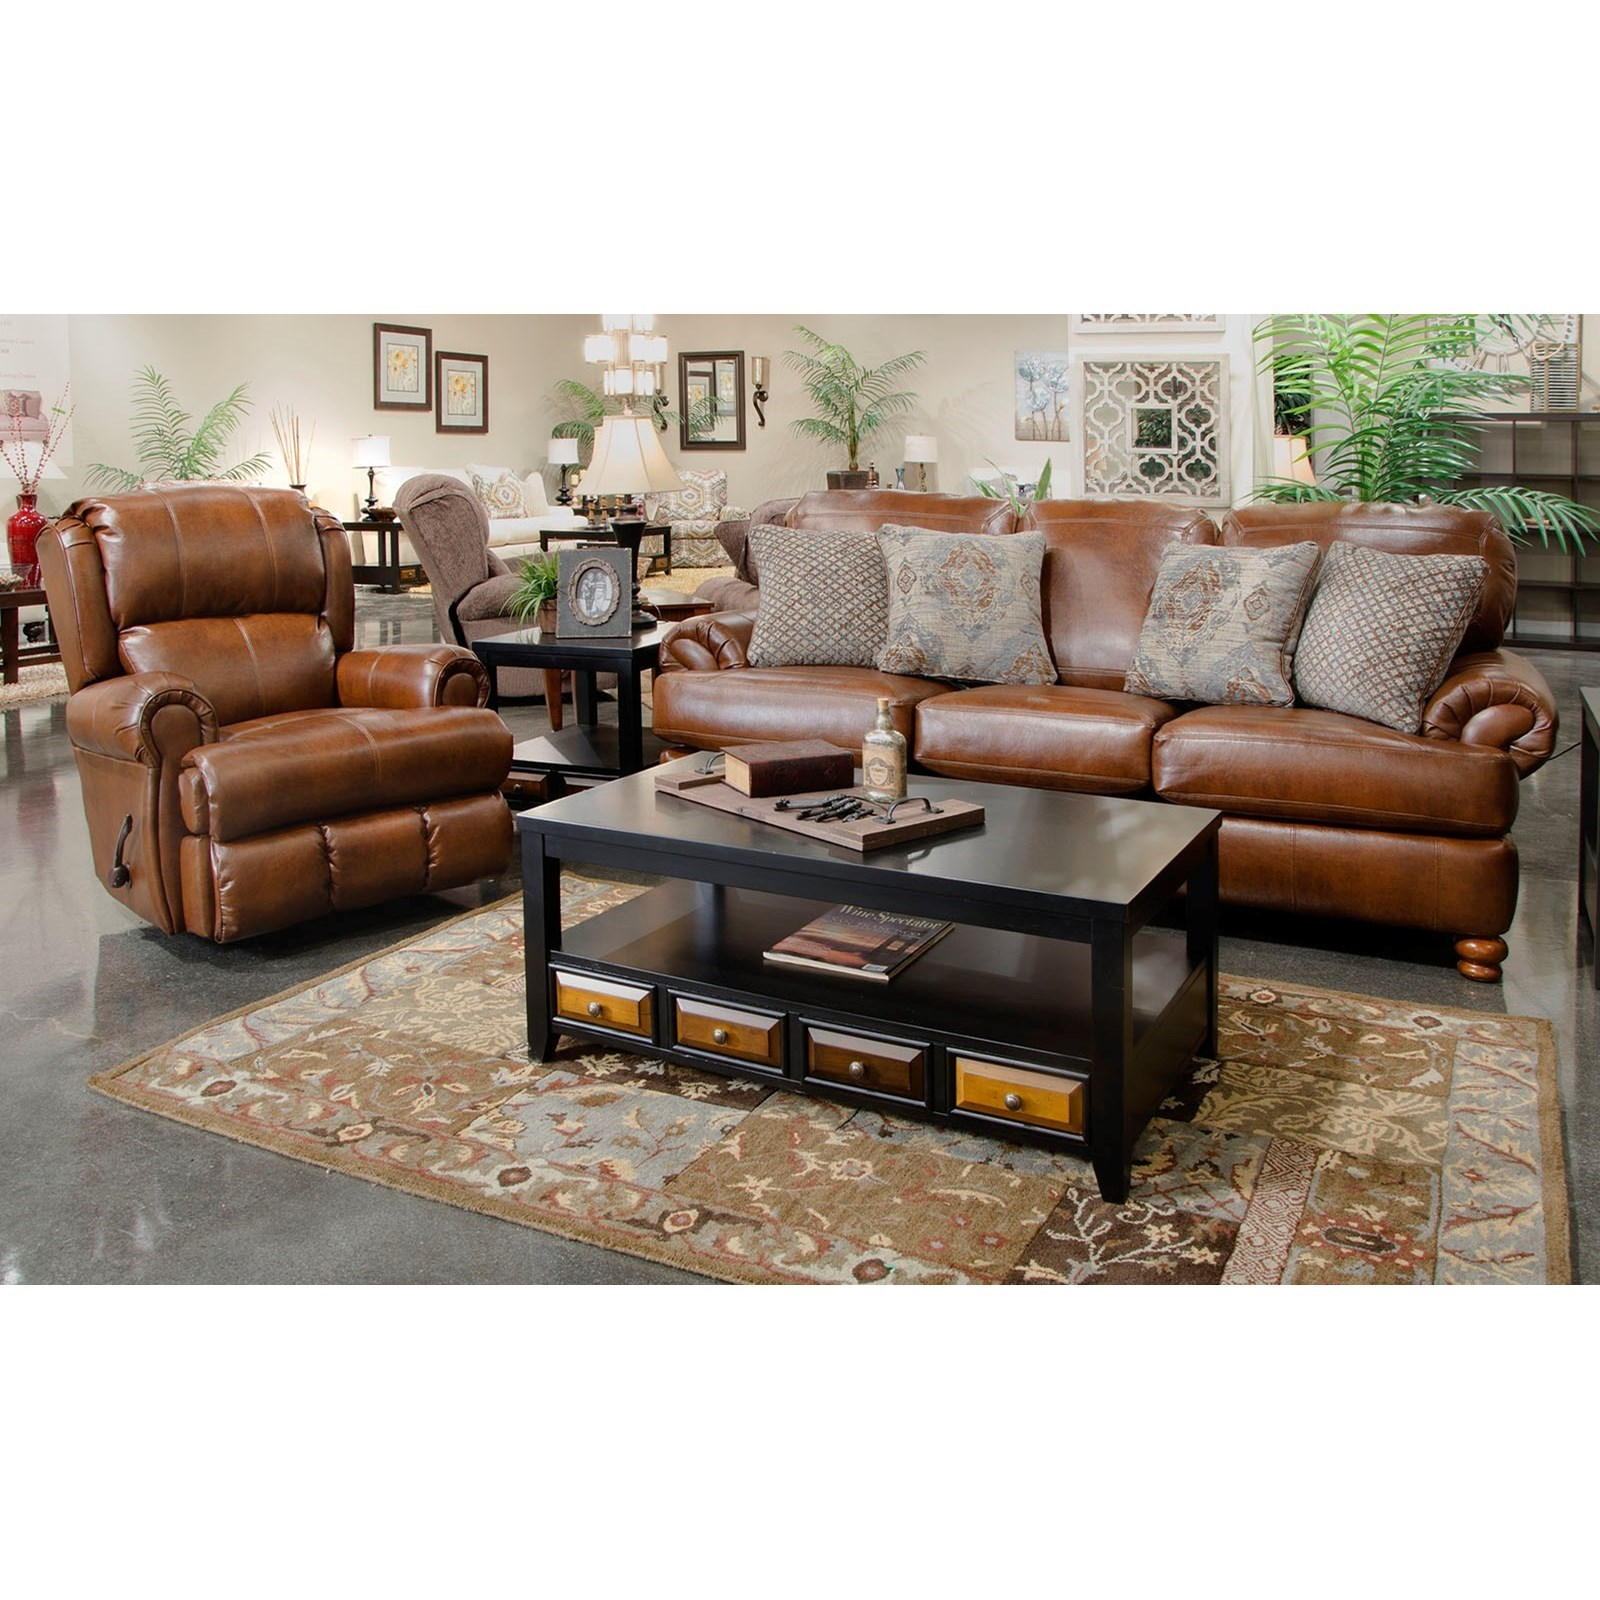 Jackson Furniture Southport Stationary Sofa and Glider Recliner Set - L Fish - Stationary Living ...